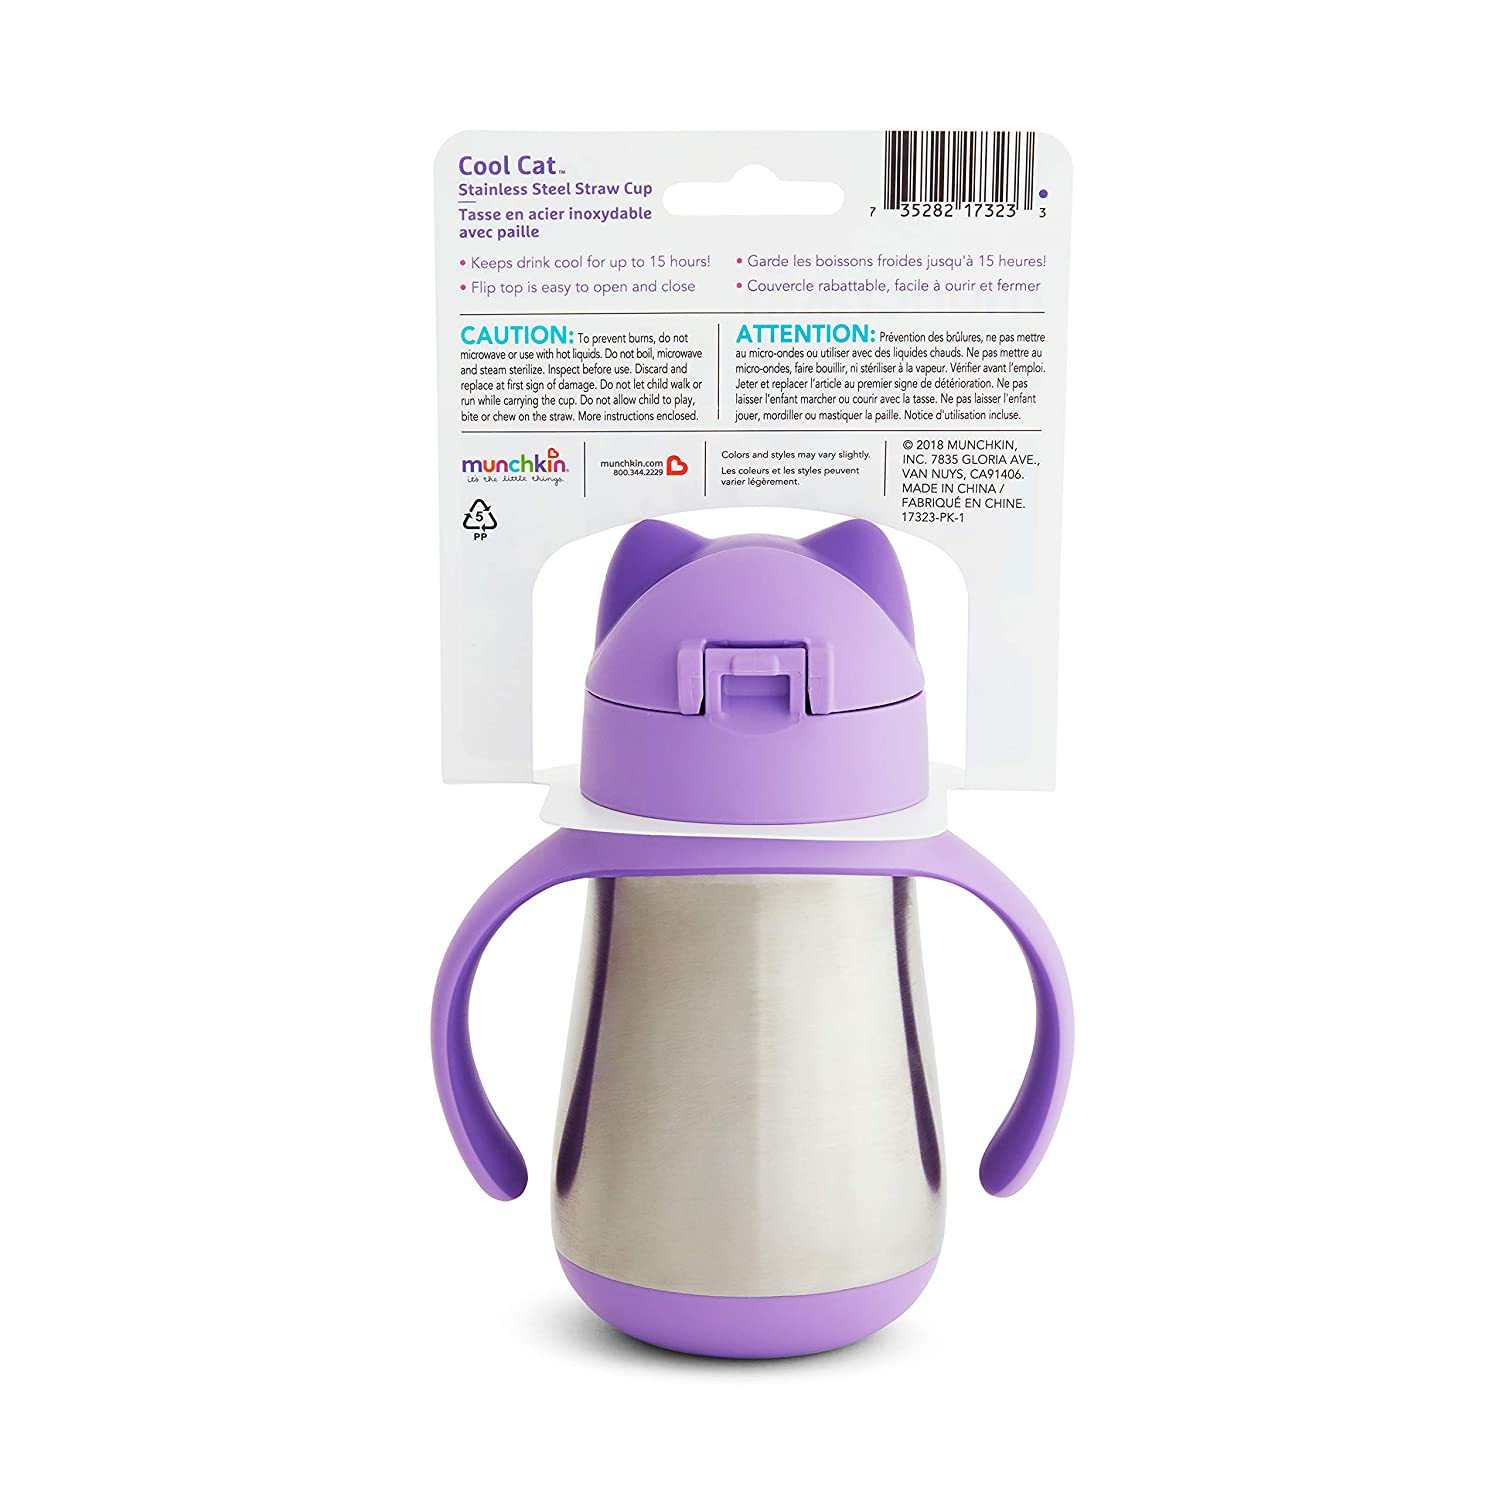 Cool Cat Stainless Steel Straw Cup 8 Ounce Purple Amazon